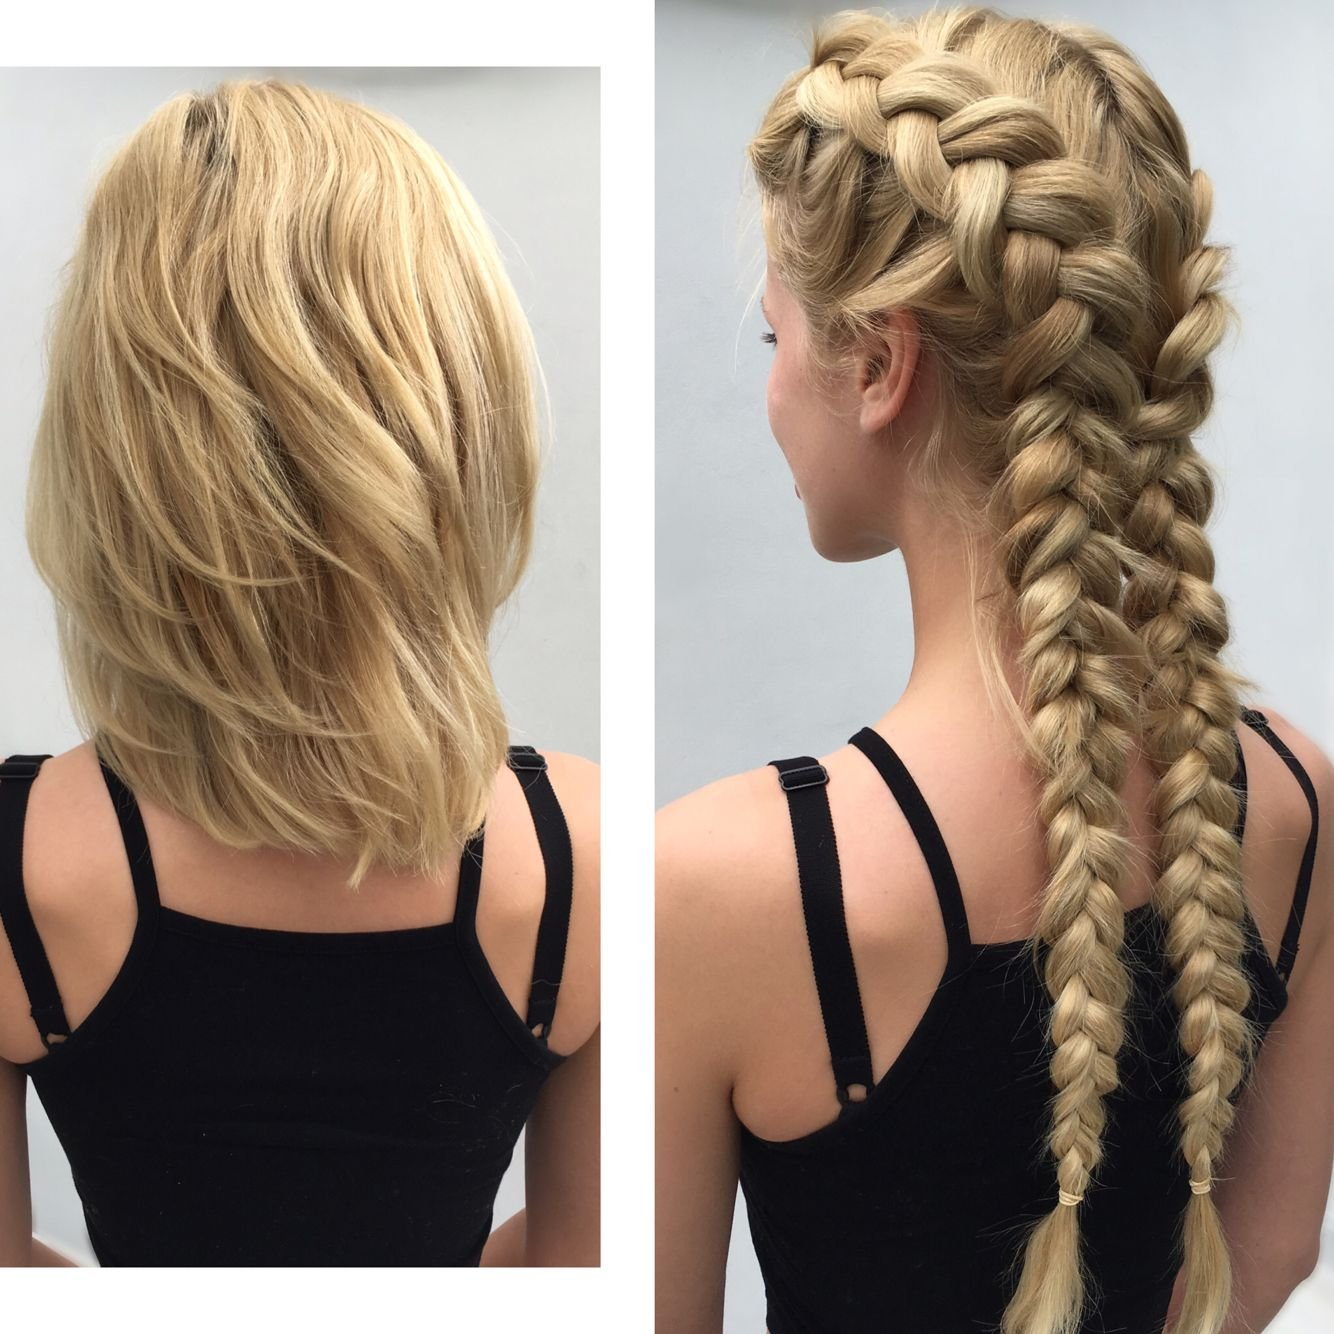 Boxer Braids Clip In Braids Hair Extensions By Tatiana Karelina Boxer Braids Hairstyles Braids With Extensions Braided Hairstyles